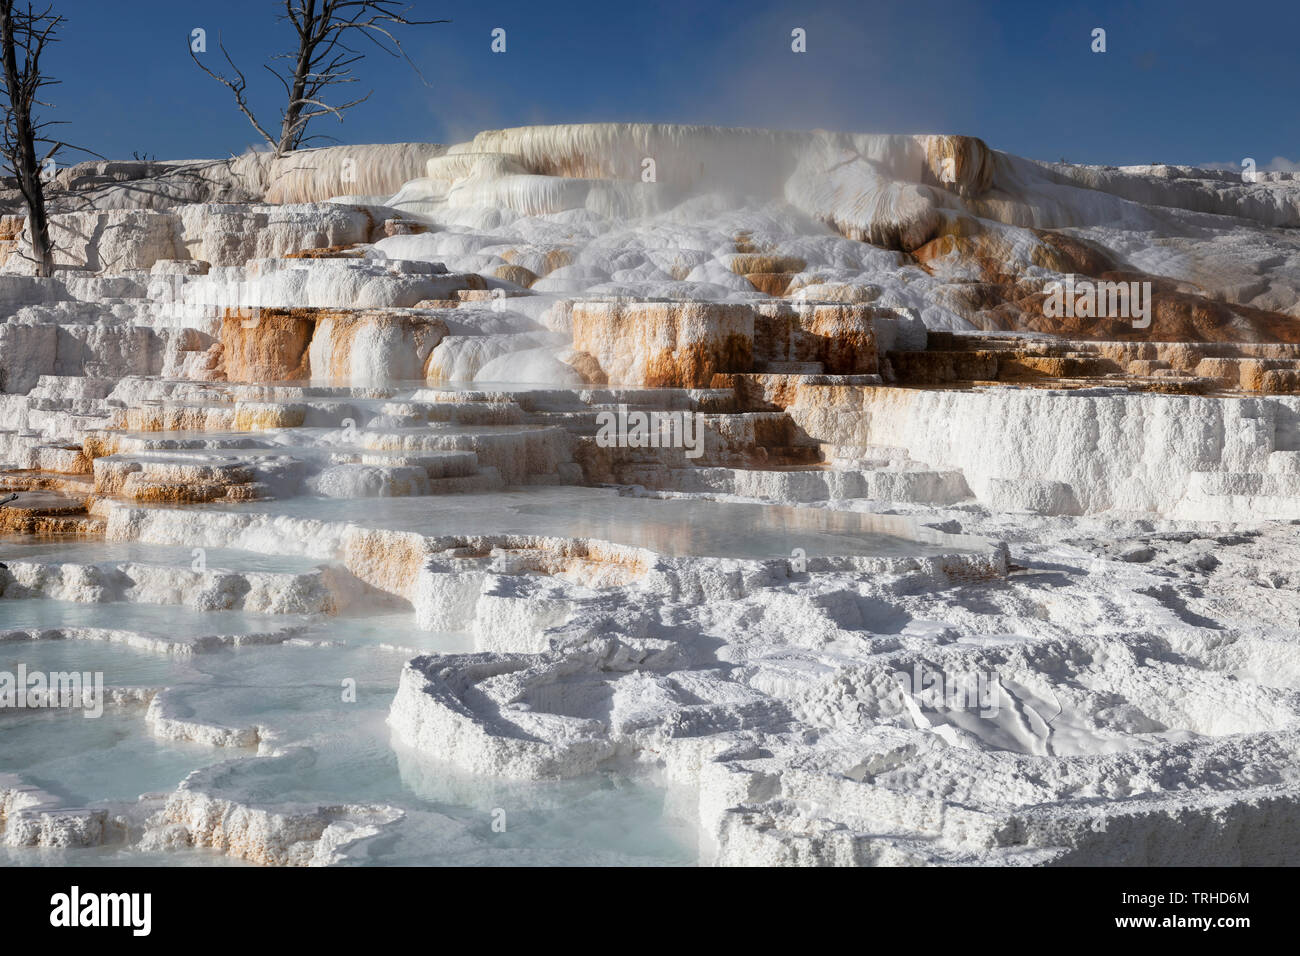 Thermal features, Mammoth Hot Springs, Yellowstone National Park, Montana, USA, by James D Coppinger/Dembinsky Photo Assoc - Stock Image